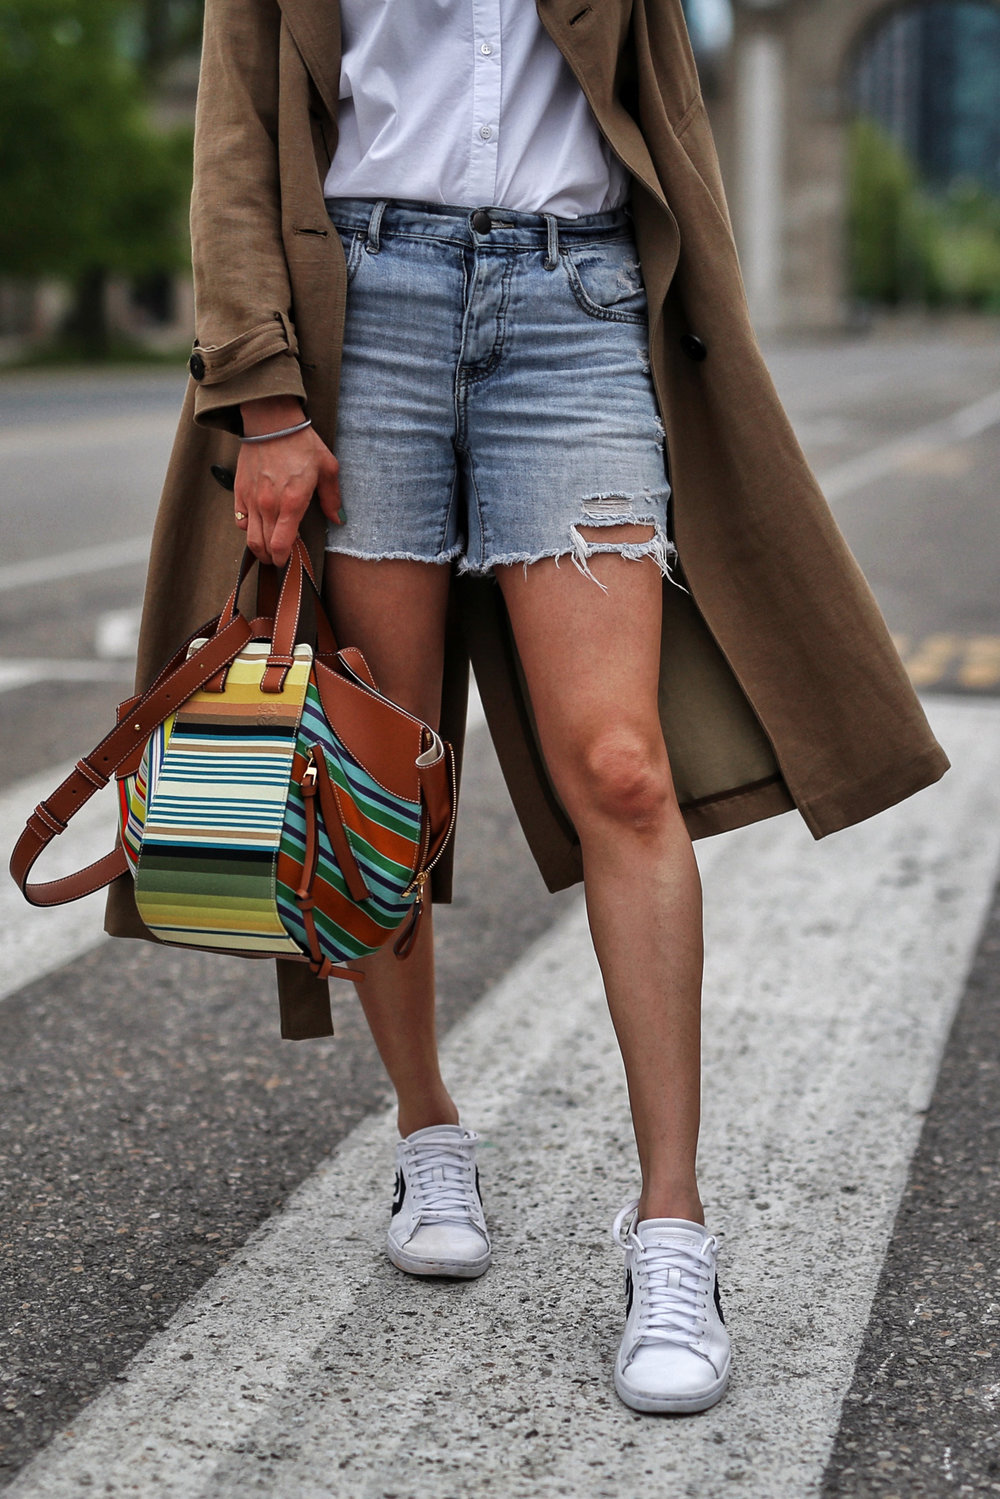 woahstyle.com 2018 - zara linen trench coat, free people cut off shorts, converse one stars, loewe striped small hammock bag, white button up shirt - toronto street style - hotel x - nathalie martin 10.jpg